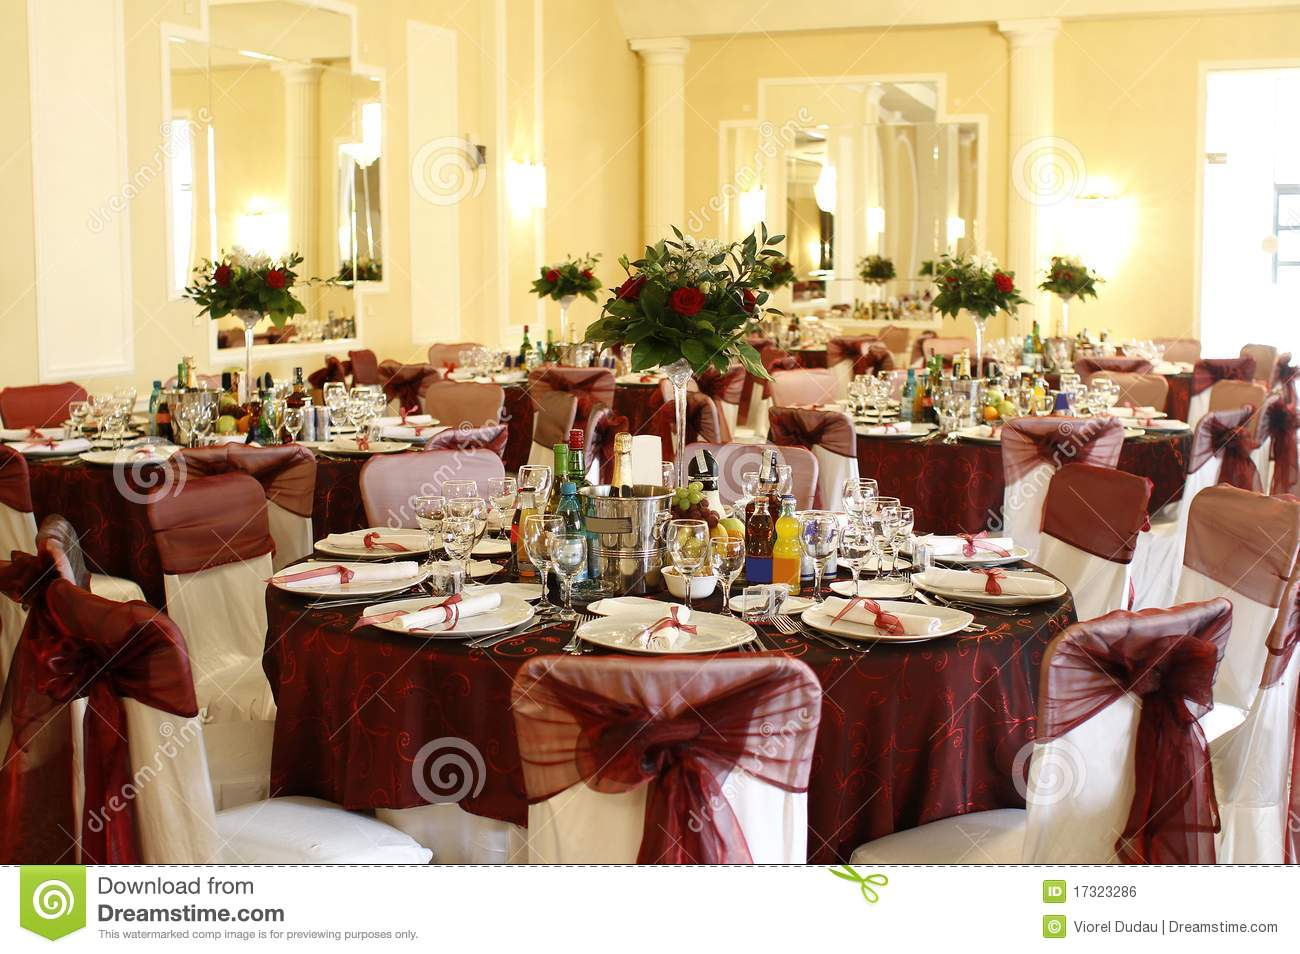 Royalty Free Stock Image Event Party Wedding Ballroom Image17323286 on banquet chairs for less